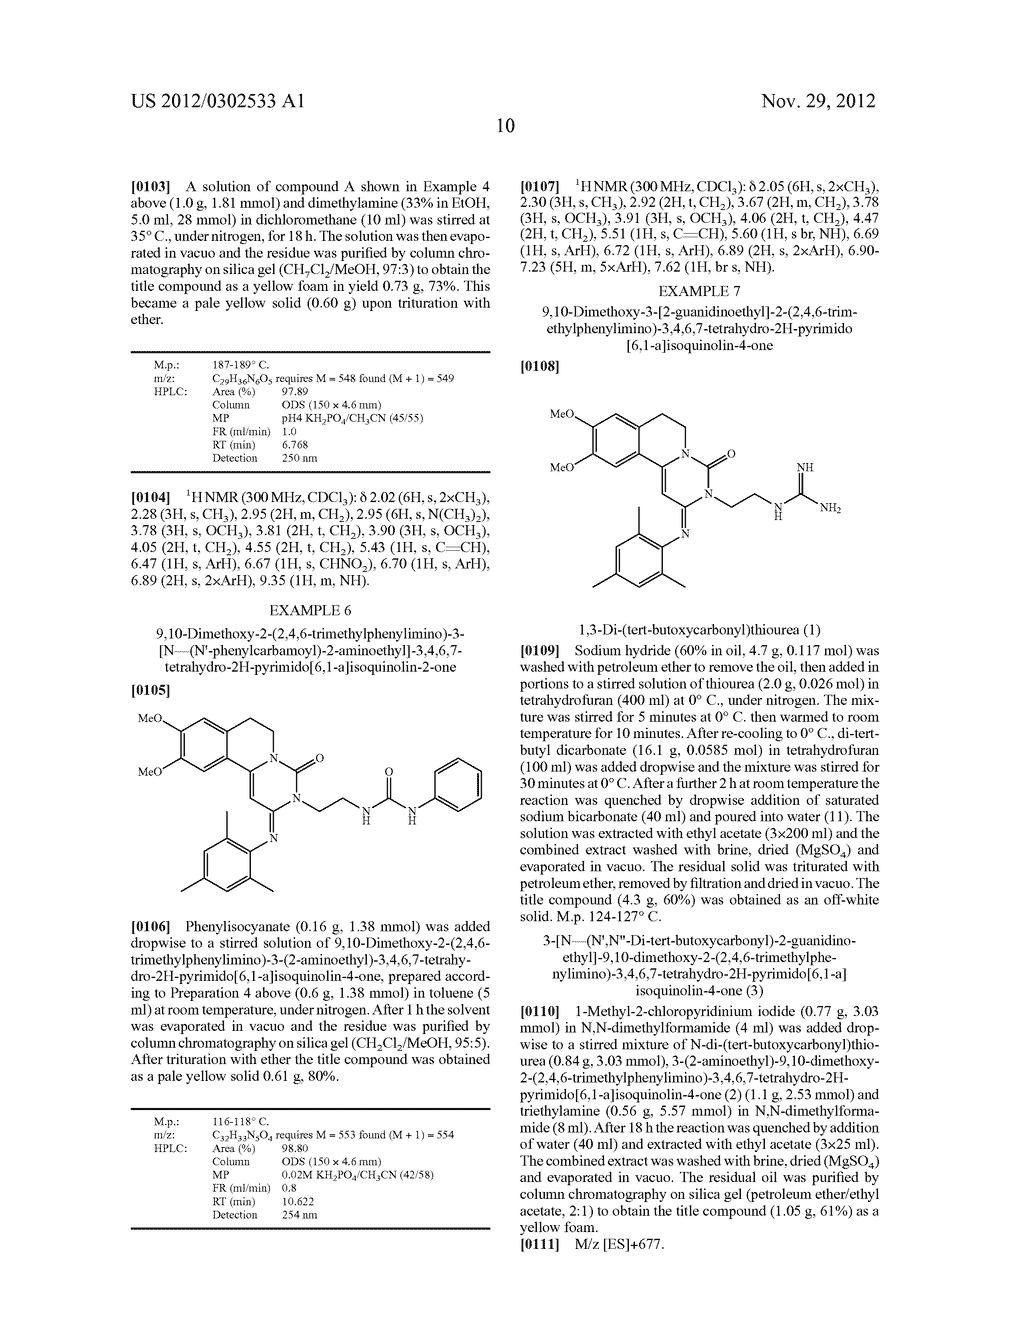 DERIVATIVES OF PYRIMIDO [6,1-A] ISOQUINOLIN-4-ONE - diagram, schematic, and image 16